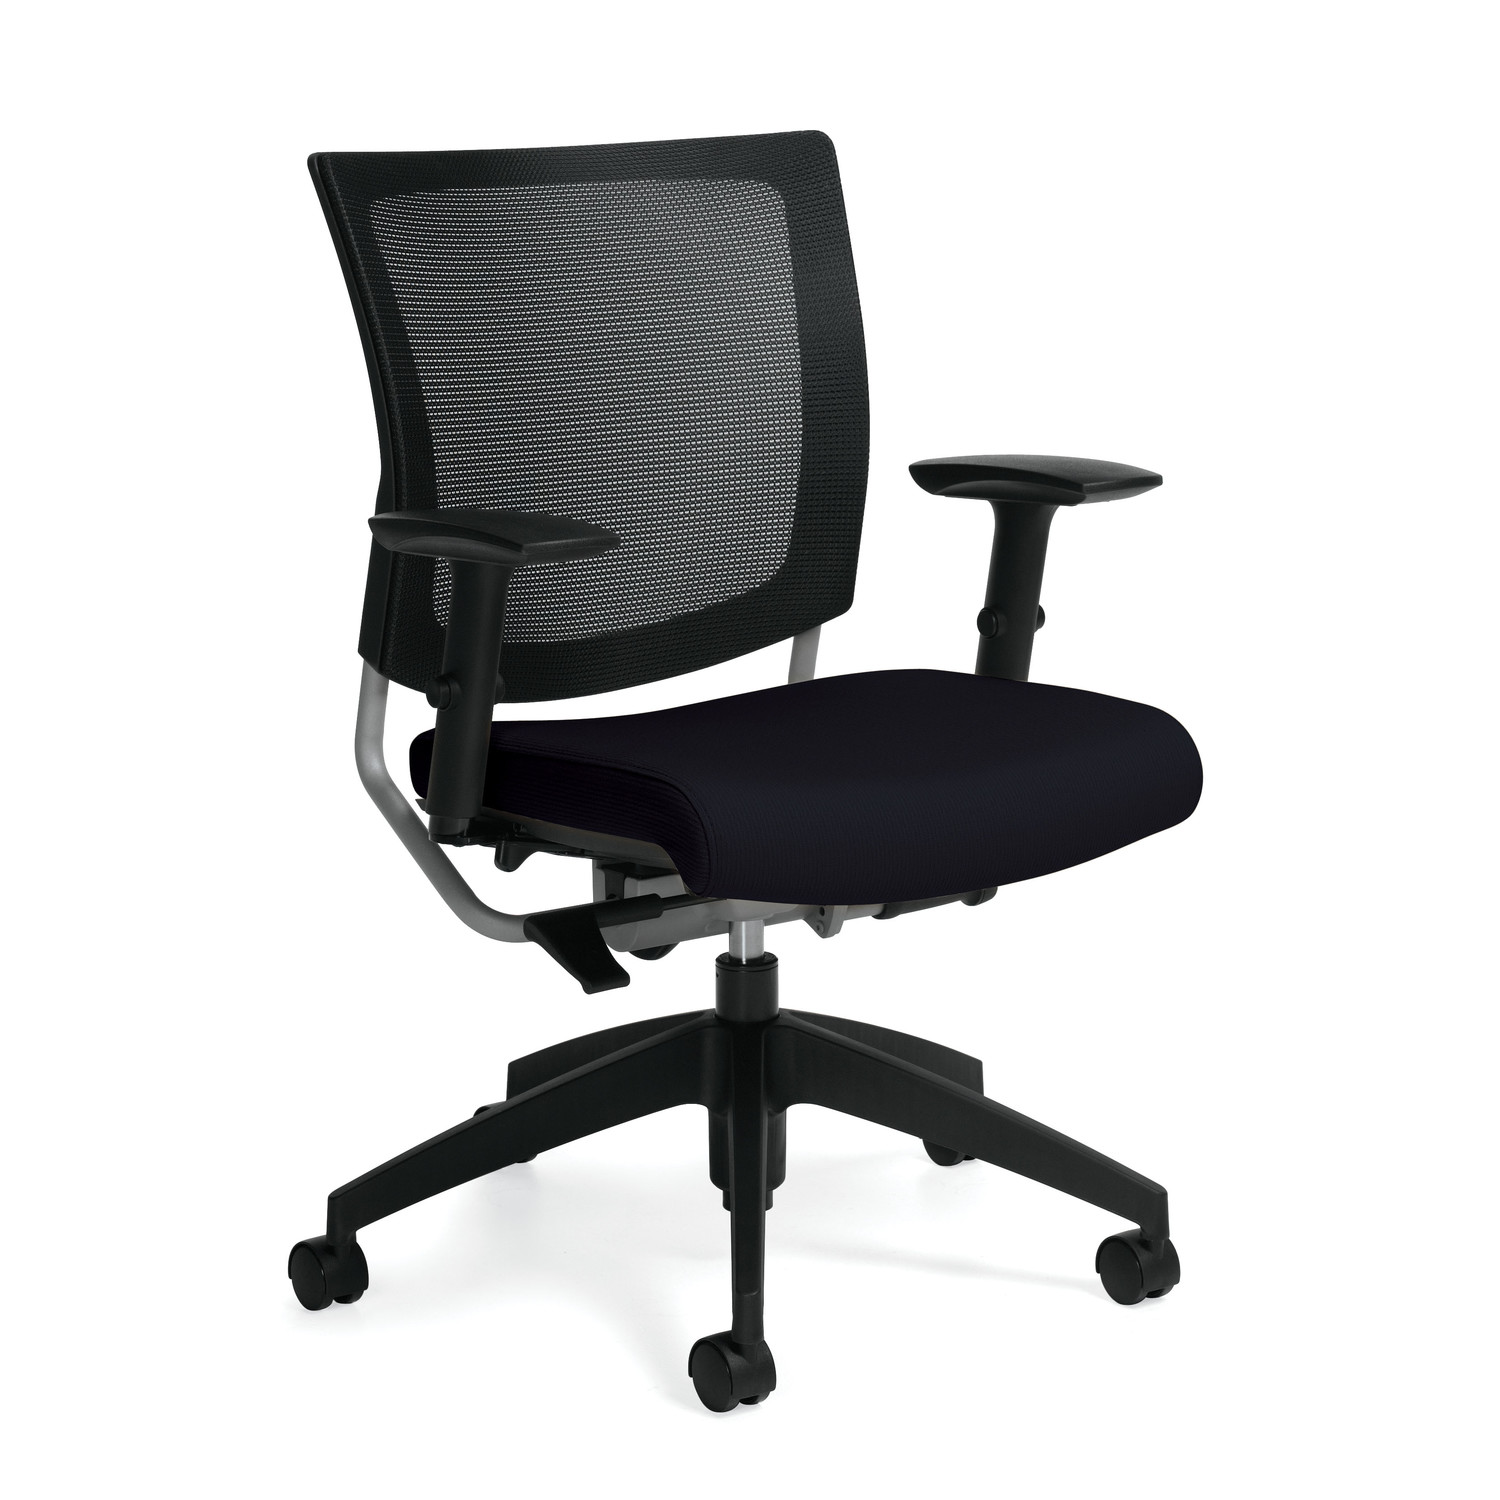 A standard ergonomic chair with a mesh back.